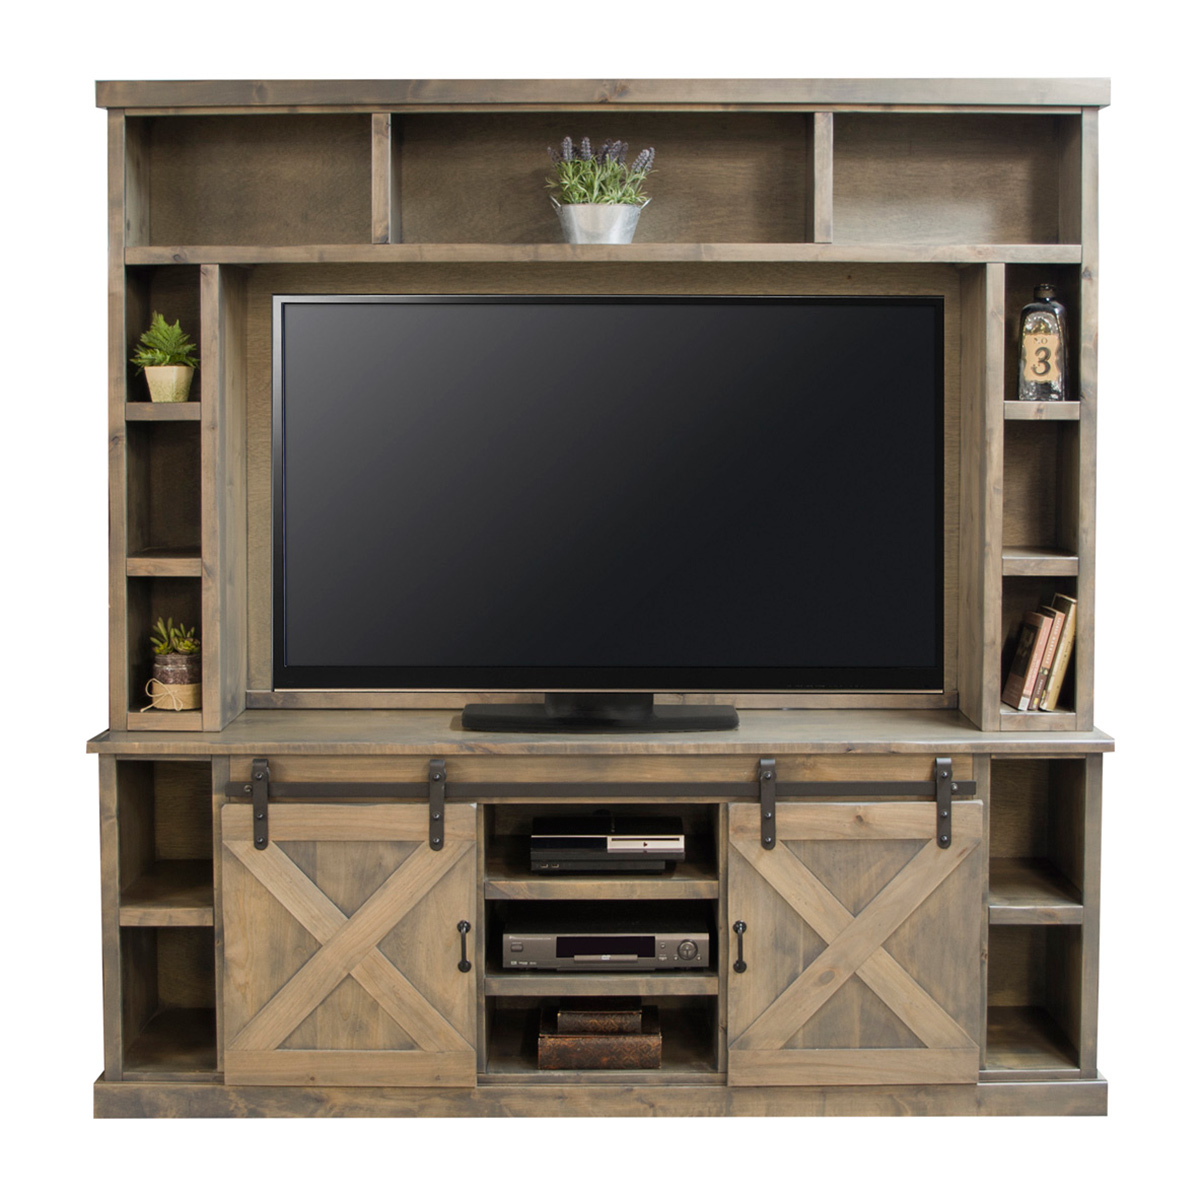 Legends Furniture Fh1425 1925 Farmhouse 85 Quot Entertainment